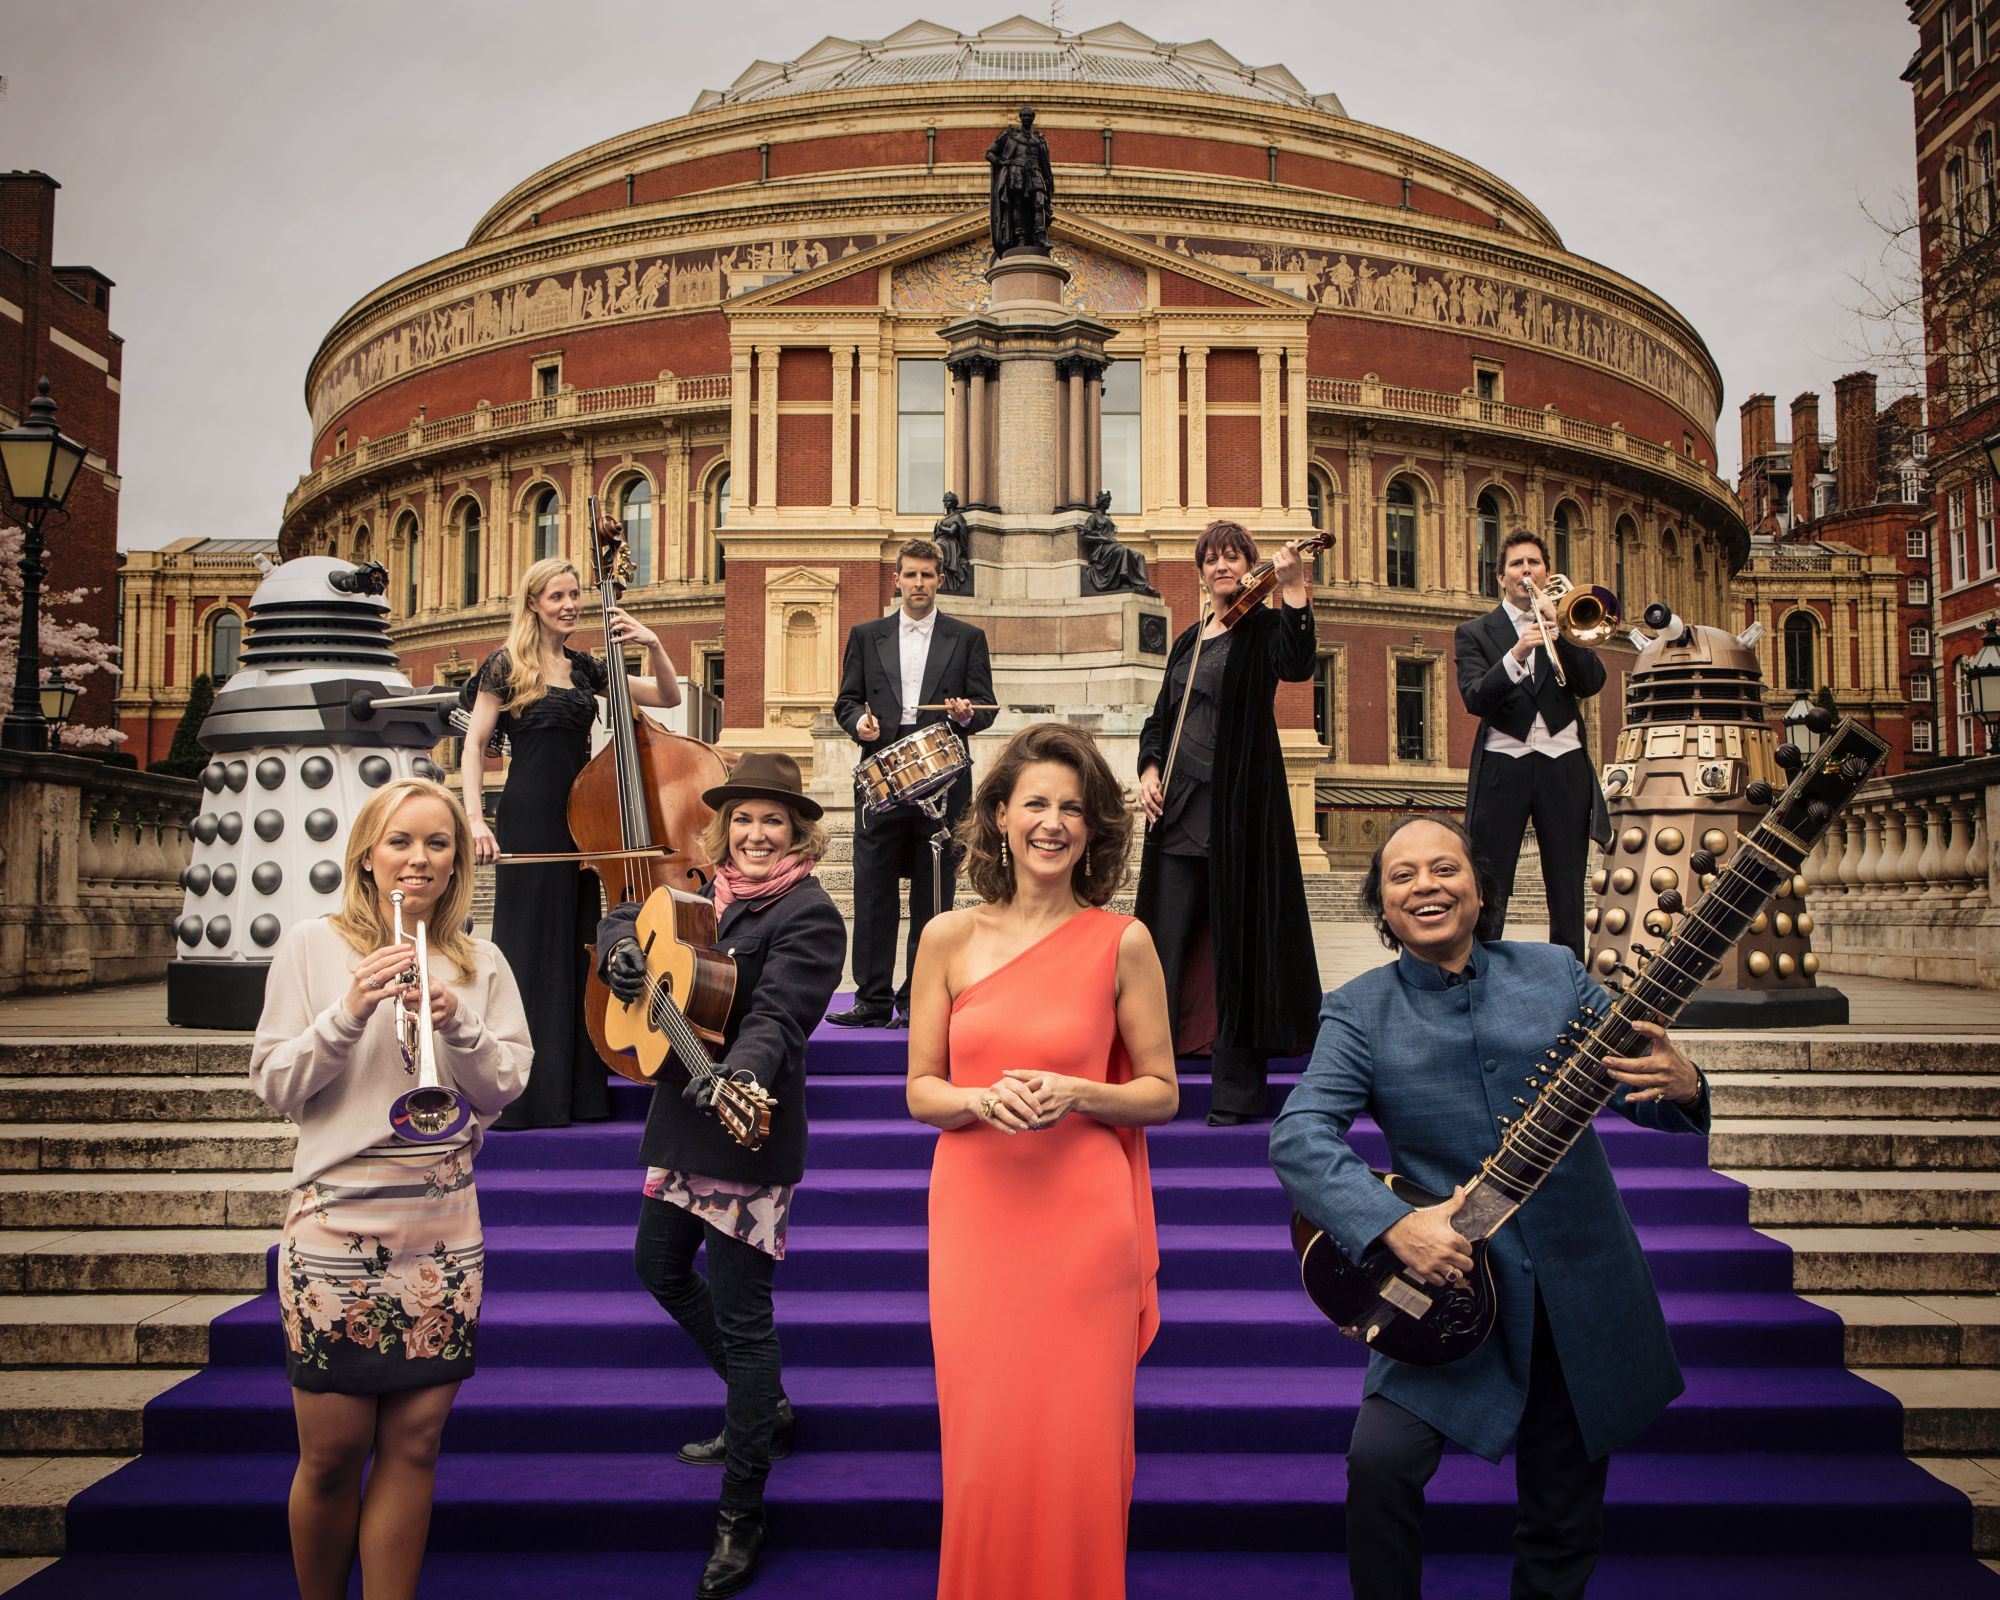 Doctor Who Prom 2013 (Credit: BBC/Robert Viglasky)